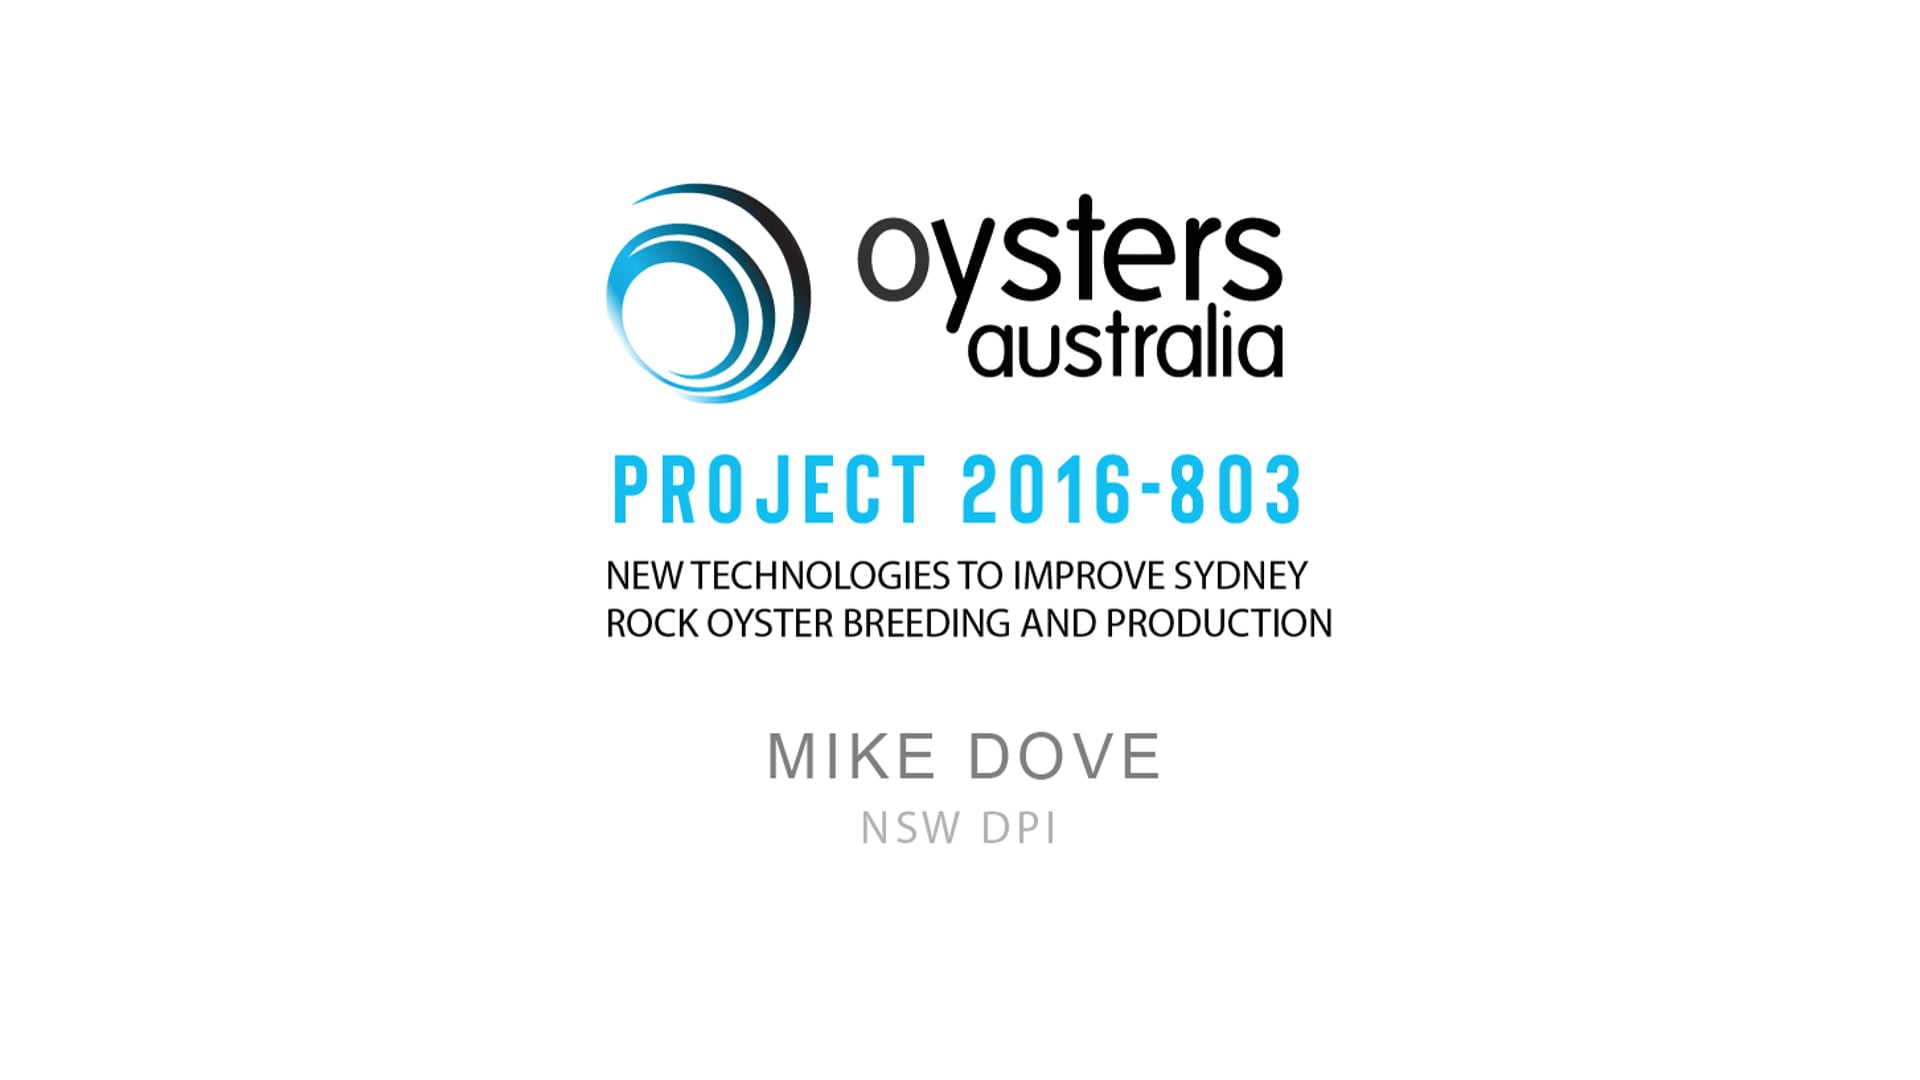 PROJECT 2016-803: New Technologies to Improve Sydney Rock Oyster Breeding and Production